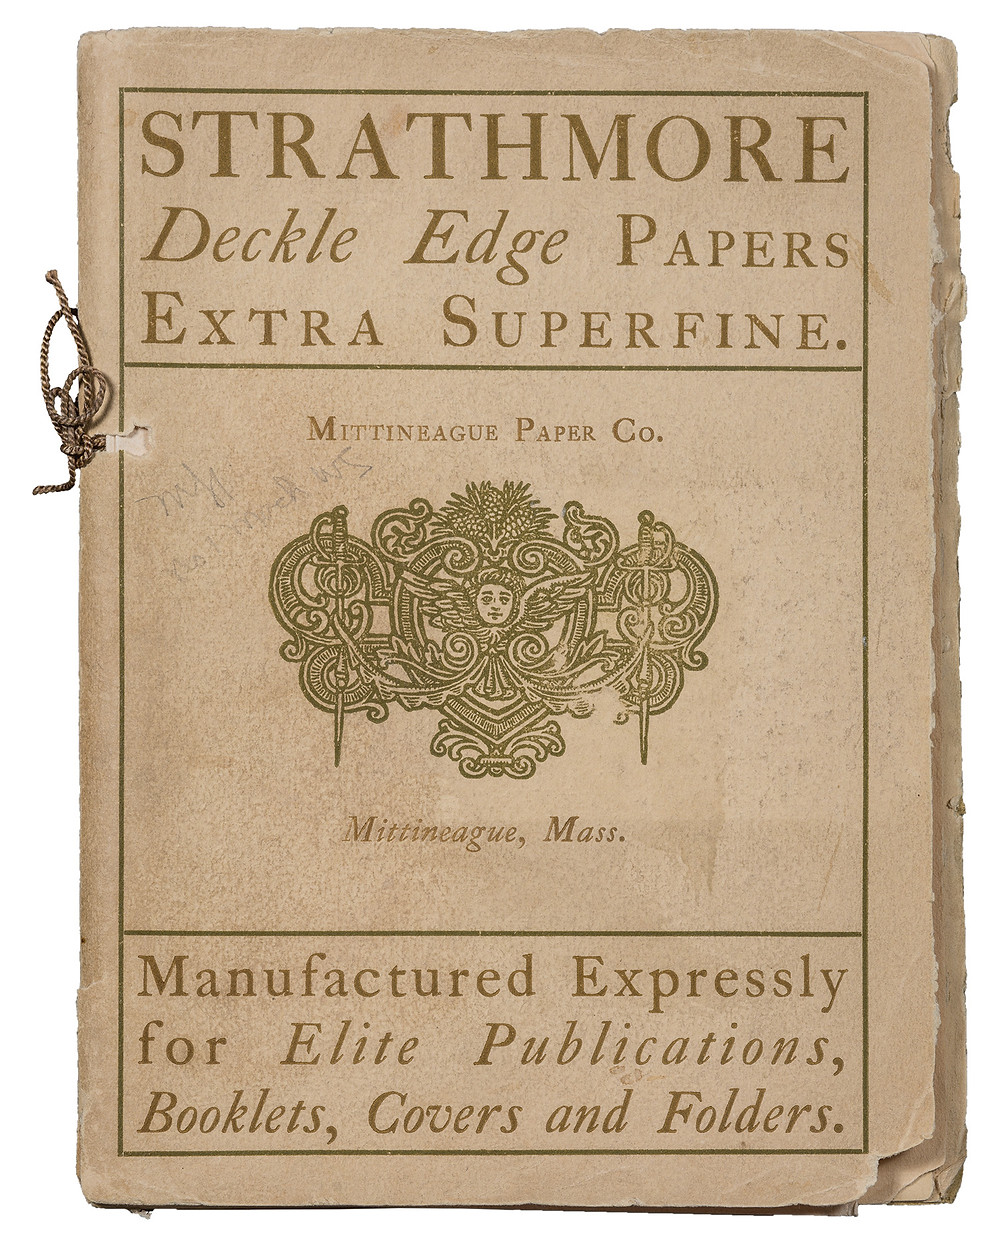 Strathmore Deckle Edge Papers Extra Superfine sample book (1898). Design by Will Bradley. This is one of the earliest paper promotions by an American paper manufacturer. (Courtesy of Mohawk Fine Papers.)